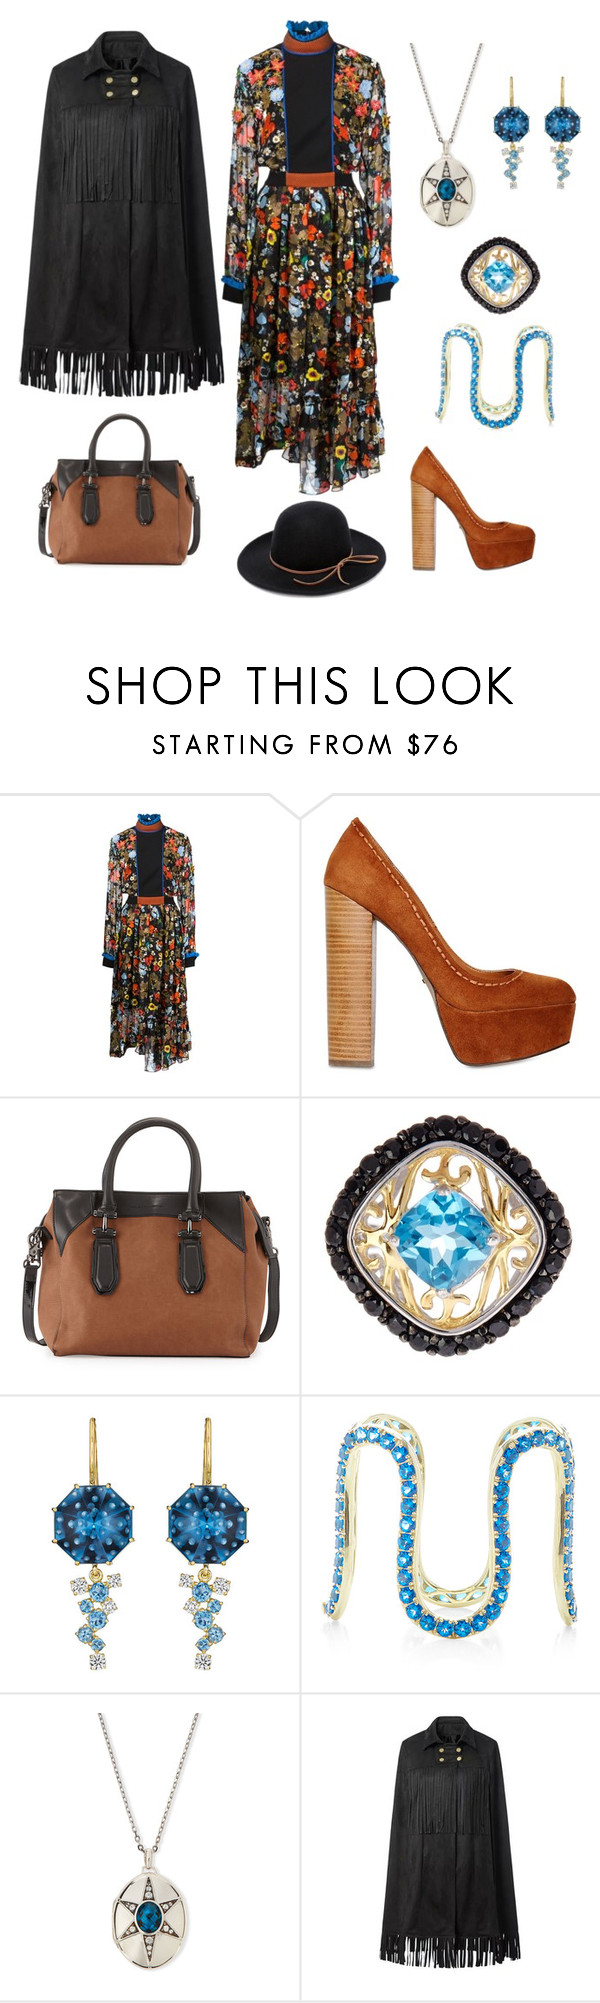 """My version of Annie Oakley"" by karen-galves on Polyvore featuring Preen, Carvela Kurt Geiger, French Connection, Olivia Leone, Sabine Getty, Monica Rich Kosann, WithChic and RHYTHM"